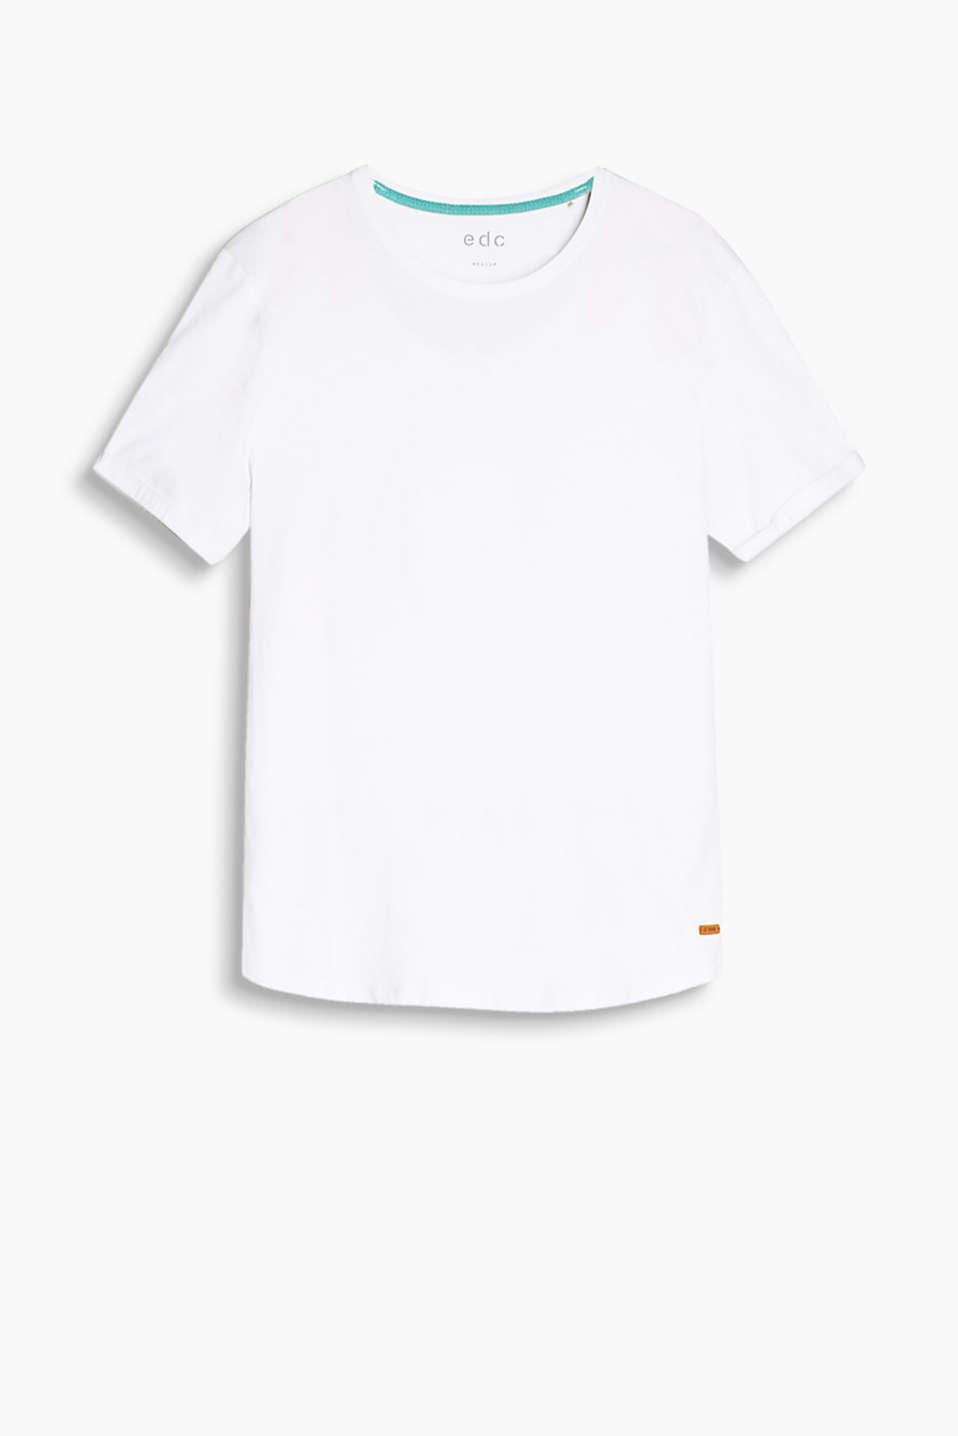 Basic soft jersey T-shirt in a melange look